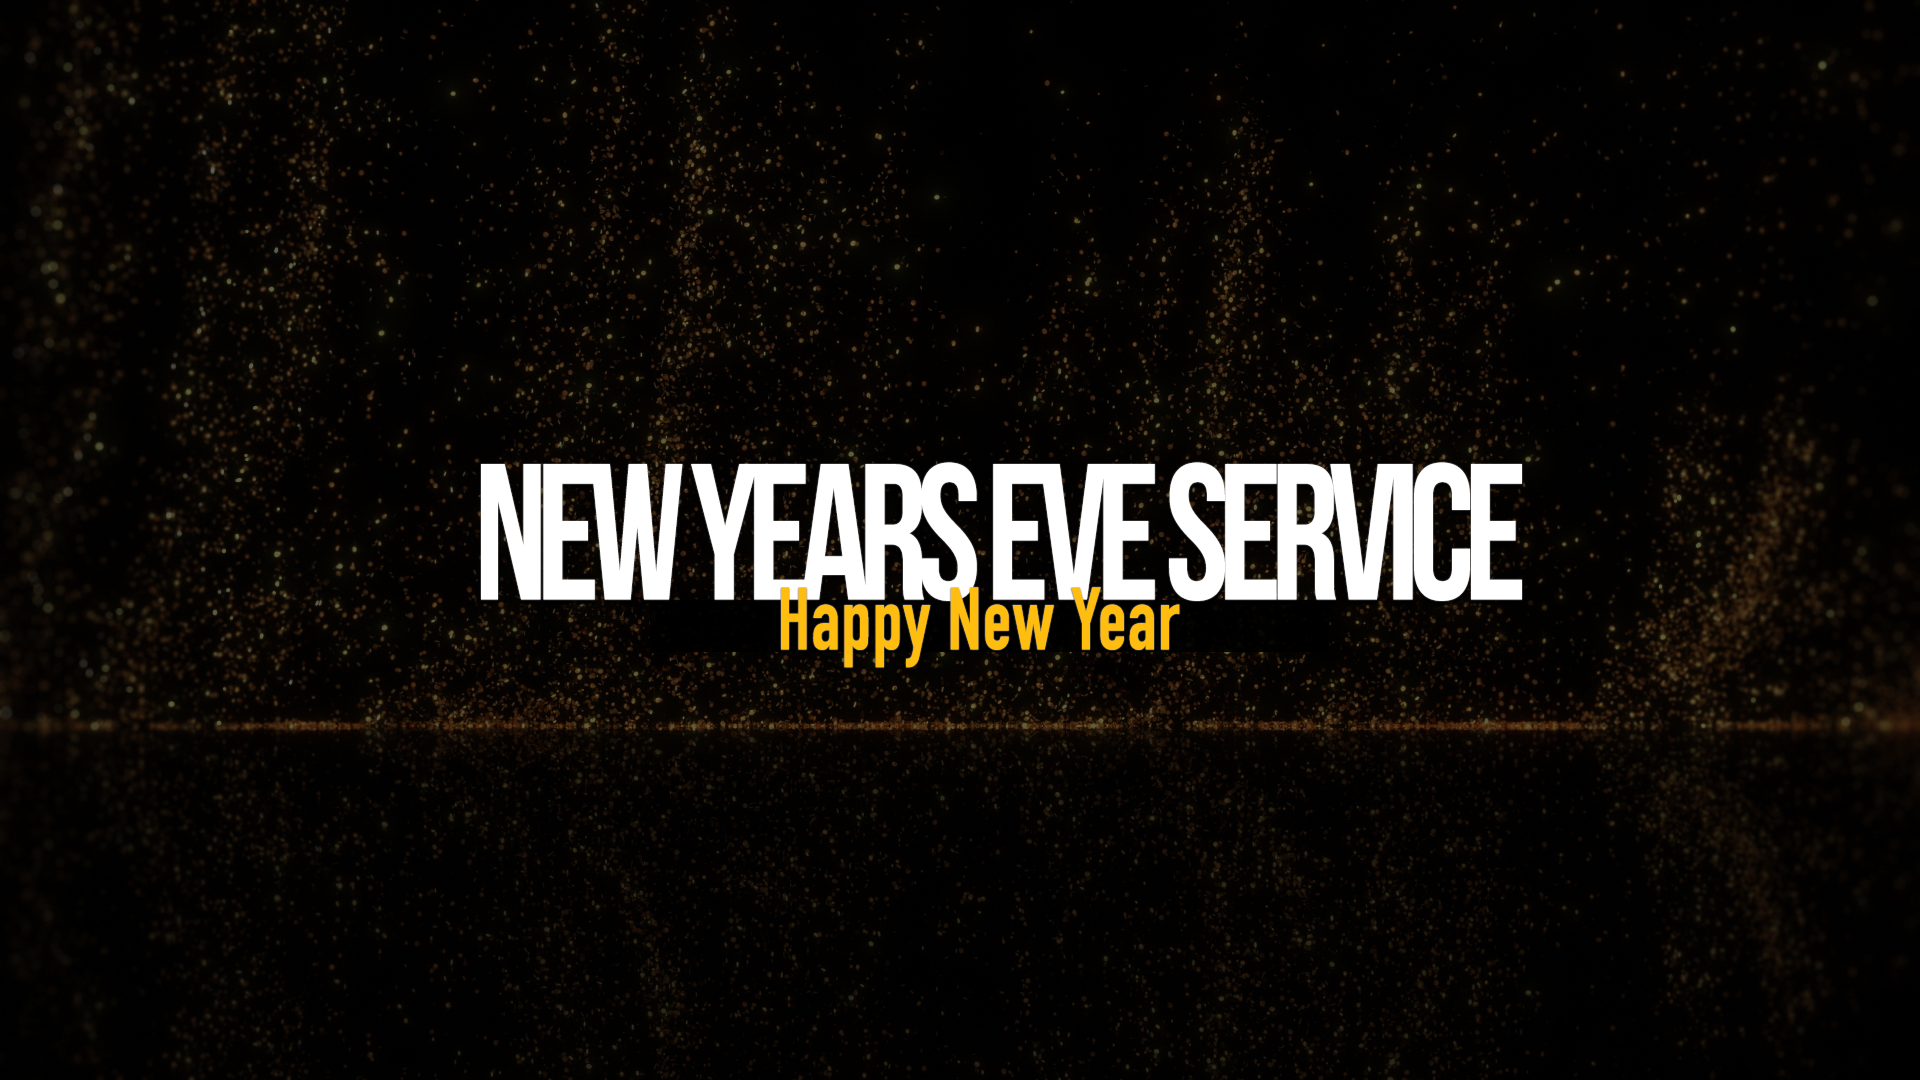 New Years Eve Service Image